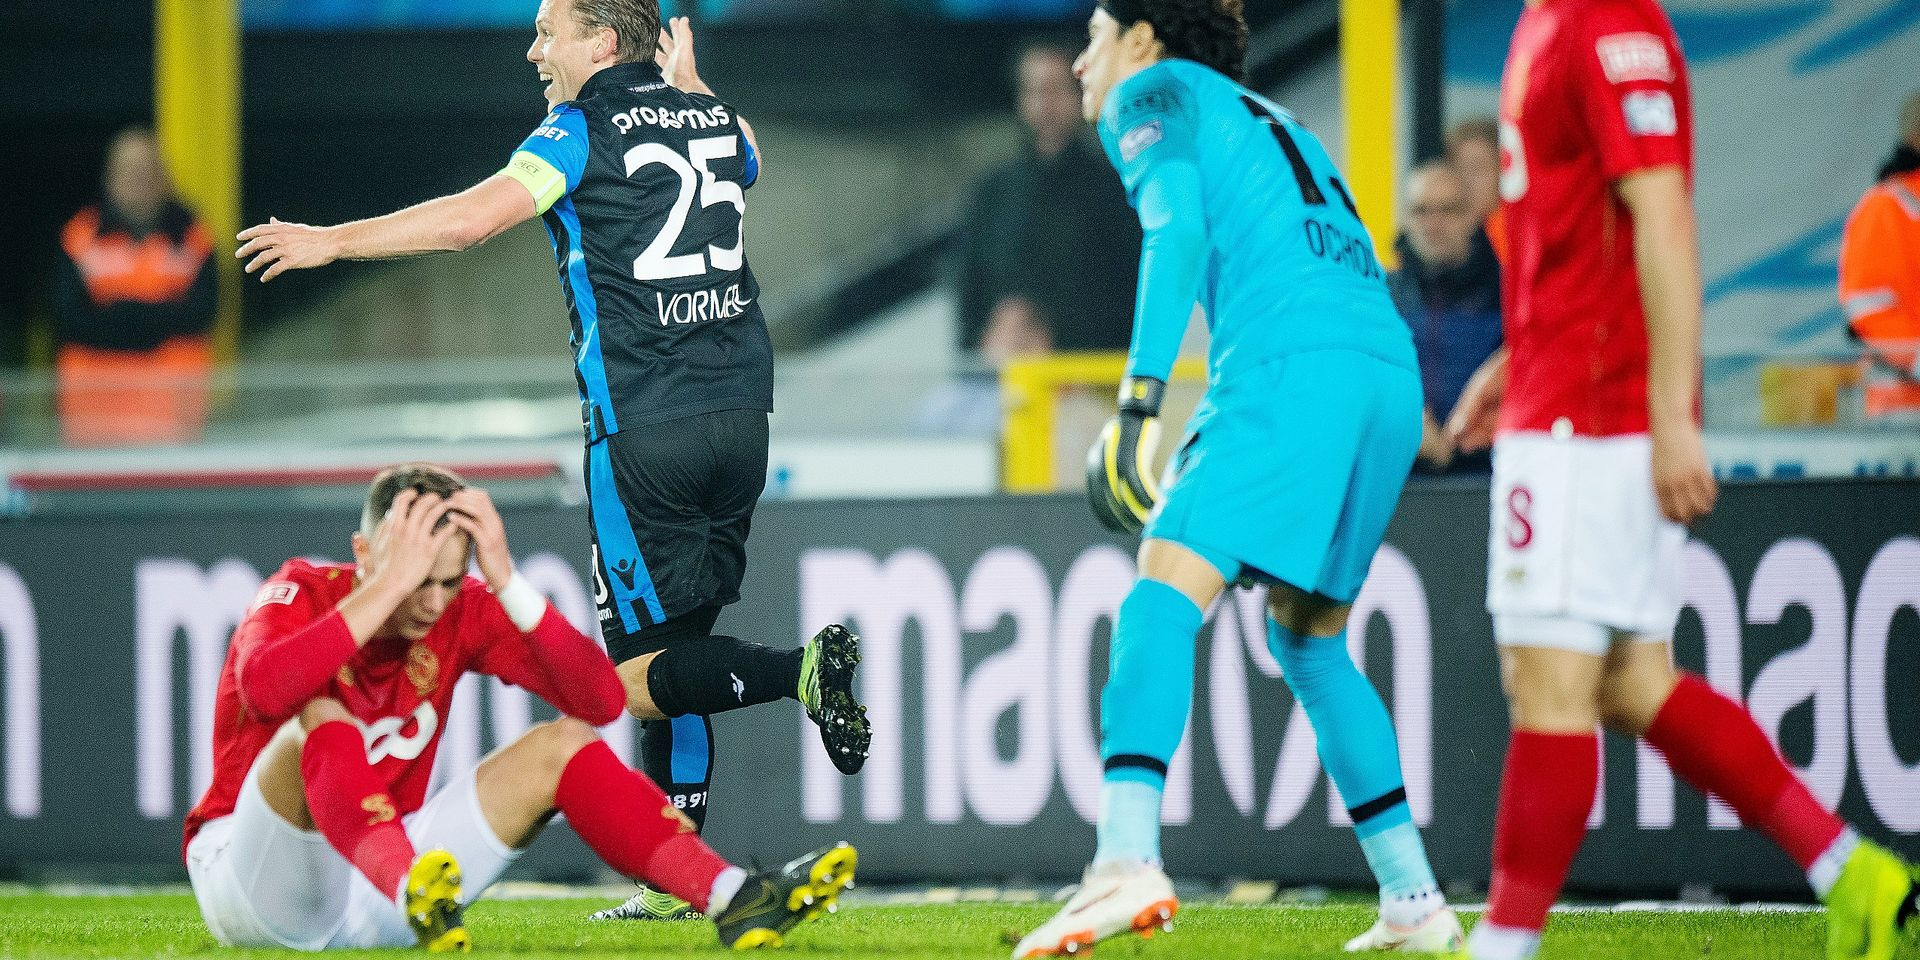 Standard's goalkeeper Guillermo Ochoa and Standard's Zinho Vanheusden look dejected after scoring an own goal during a soccer match between Club Brugge KV and Standard de Liege, Monday 08 April 2019 in Brugge, on day 3 (out of 10) of the Play-off 1 of the 'Jupiler Pro League' Belgian soccer championship. BELGA PHOTO JASPER JACOBS